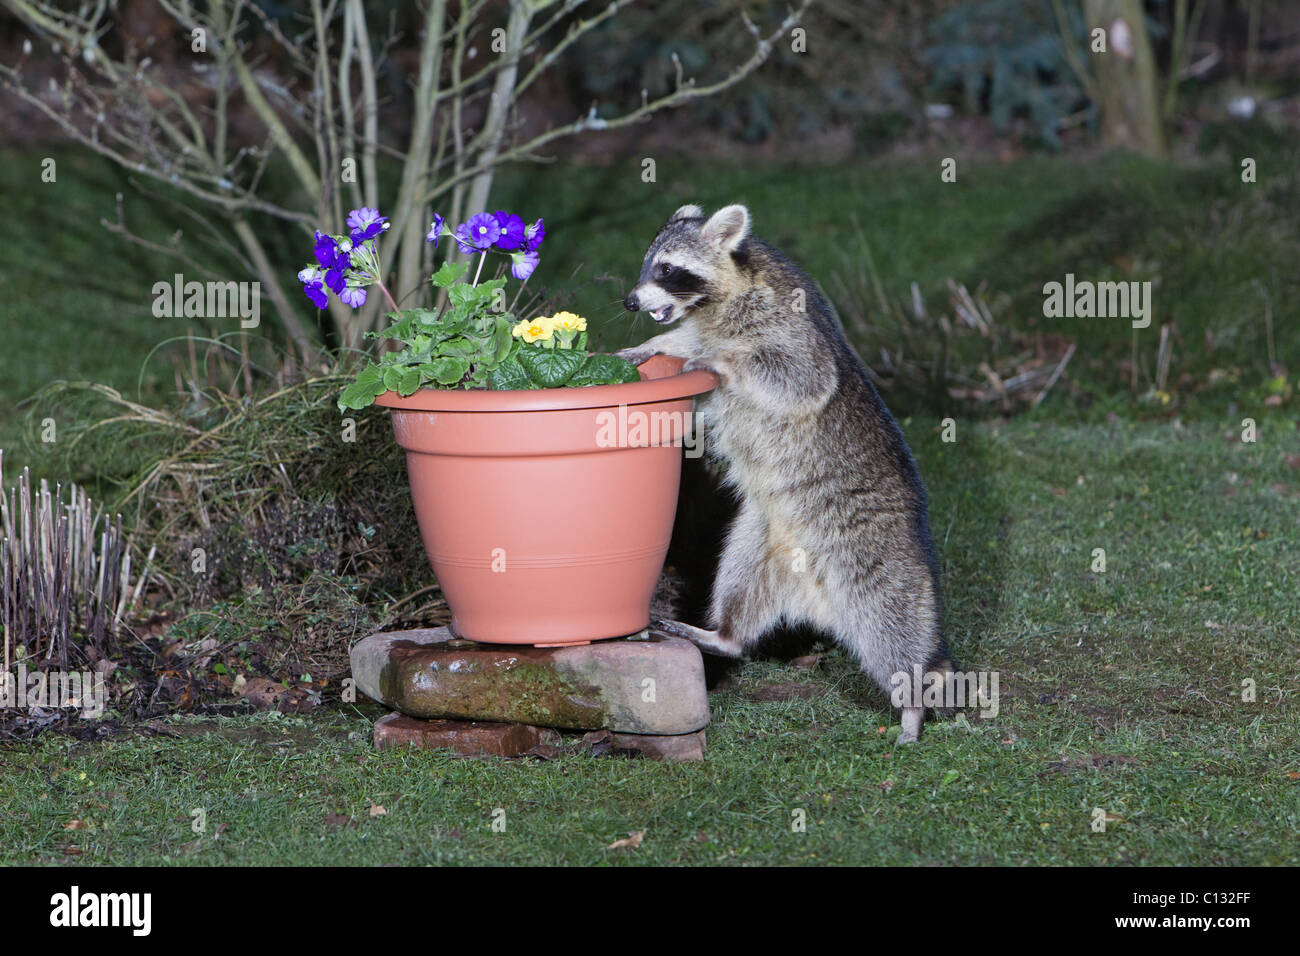 Raccoon (Procyon lotor), searching for food in plant pot - Stock Image